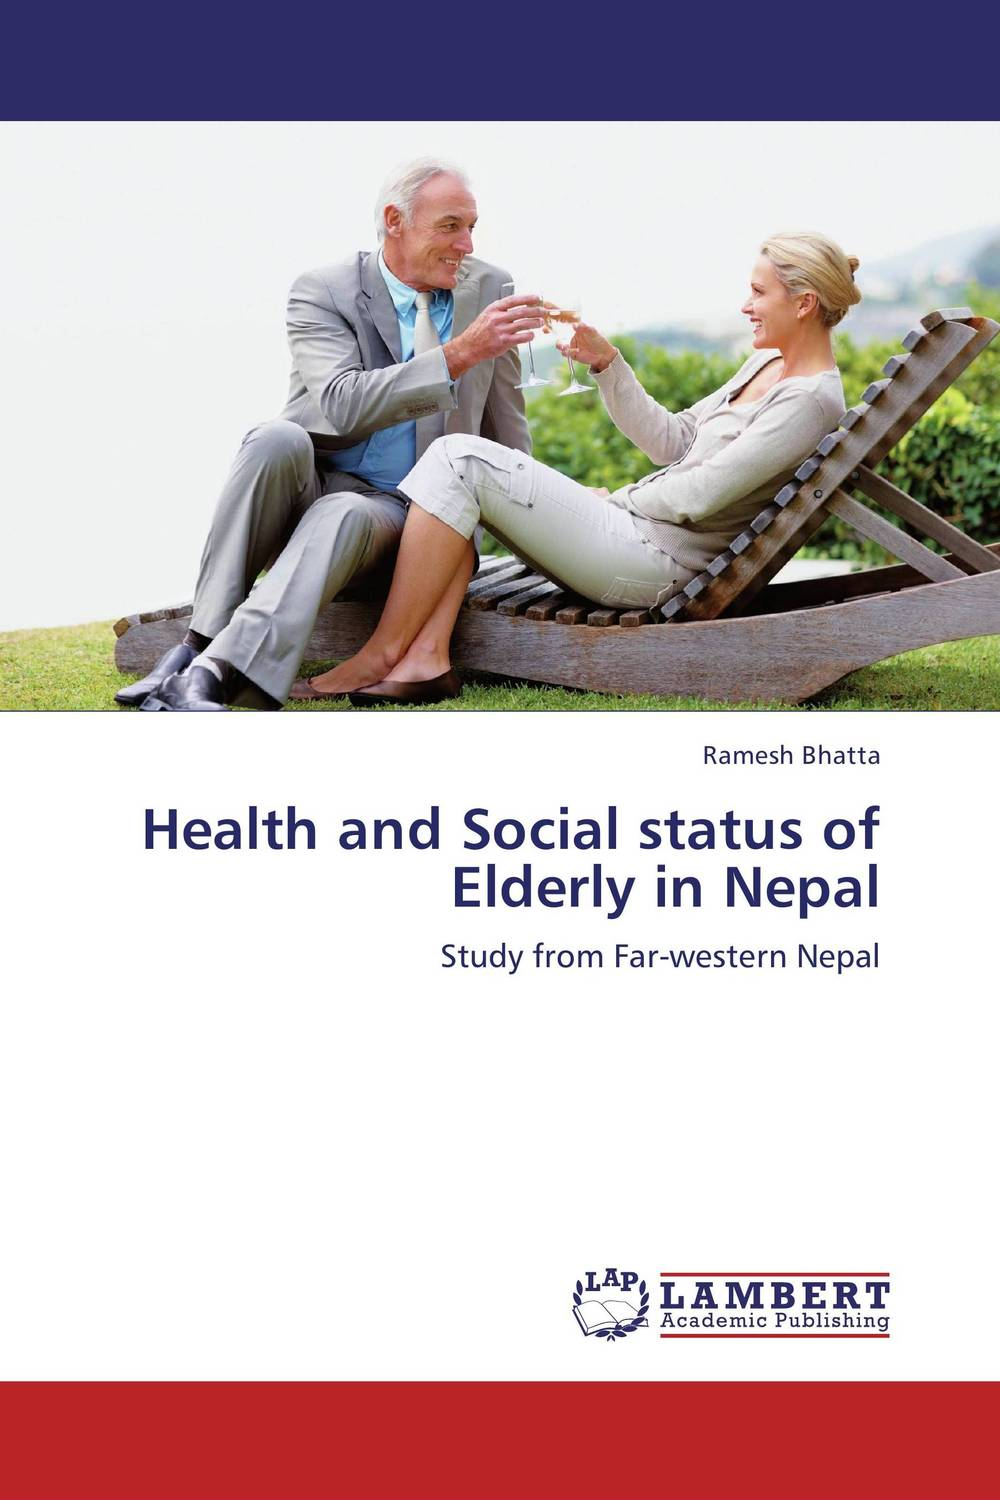 Health and Social status of Elderly in Nepal prostate health devices is prostate removal prostatitis mainly for the prostate health and prostatitis health capsule